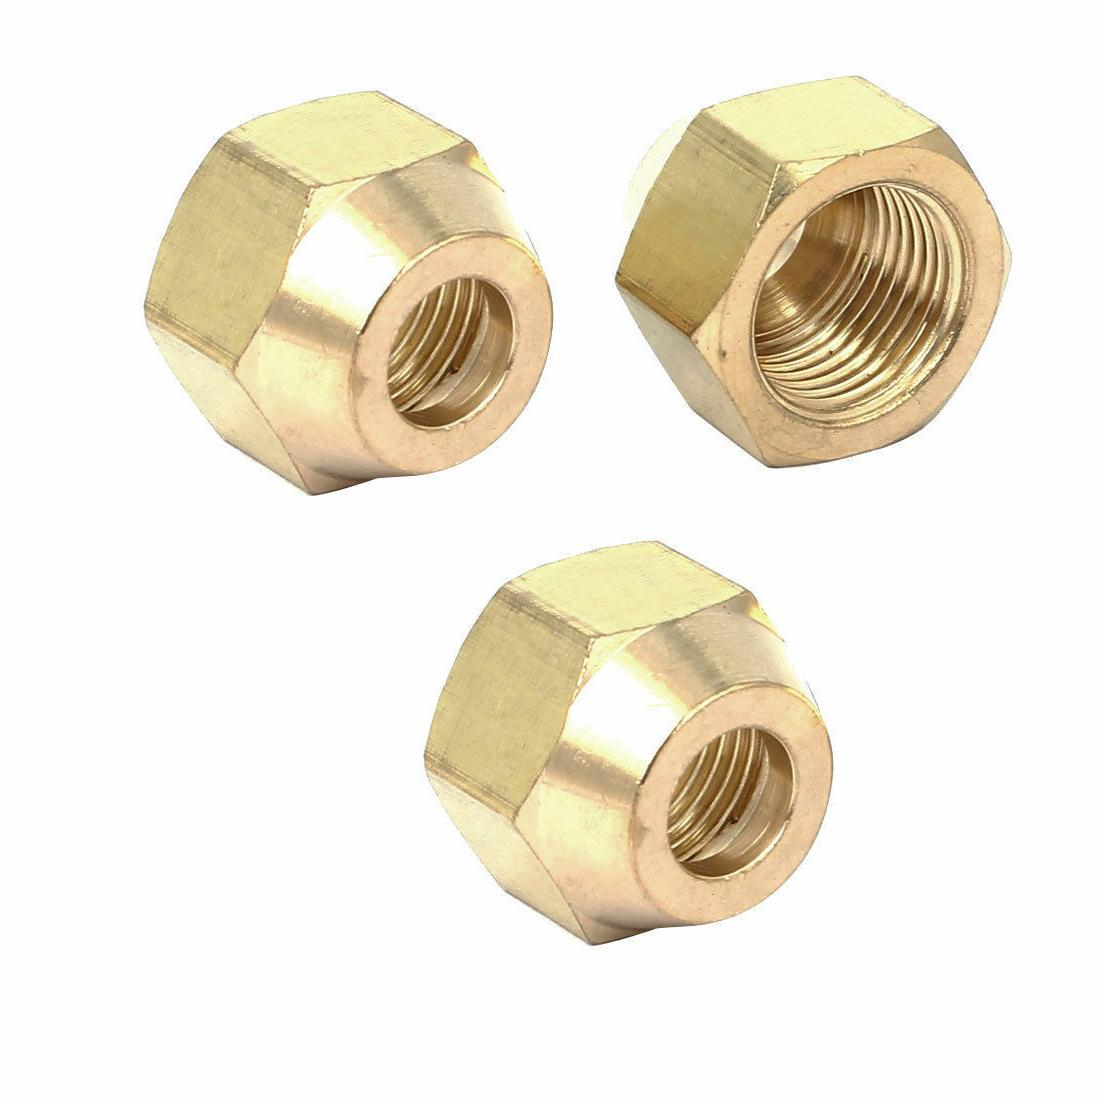 Female Nuts Air Conditioner Fittings 10pcs